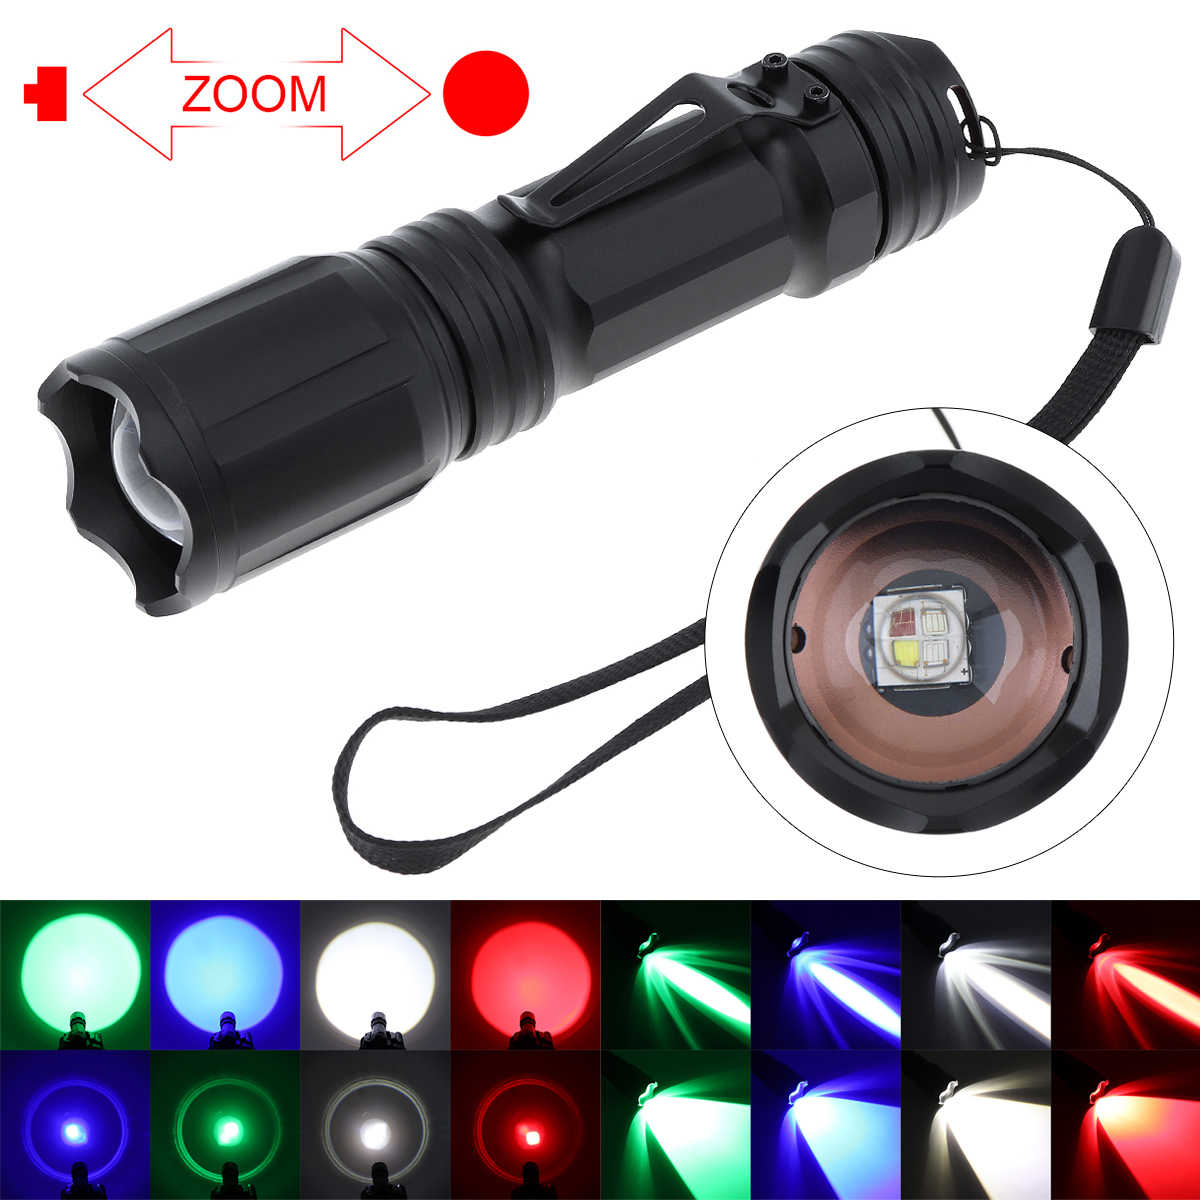 RGBW Tactical Flashlight Red Green Blue White LED 4 in 1 Hunting Light Torch Set